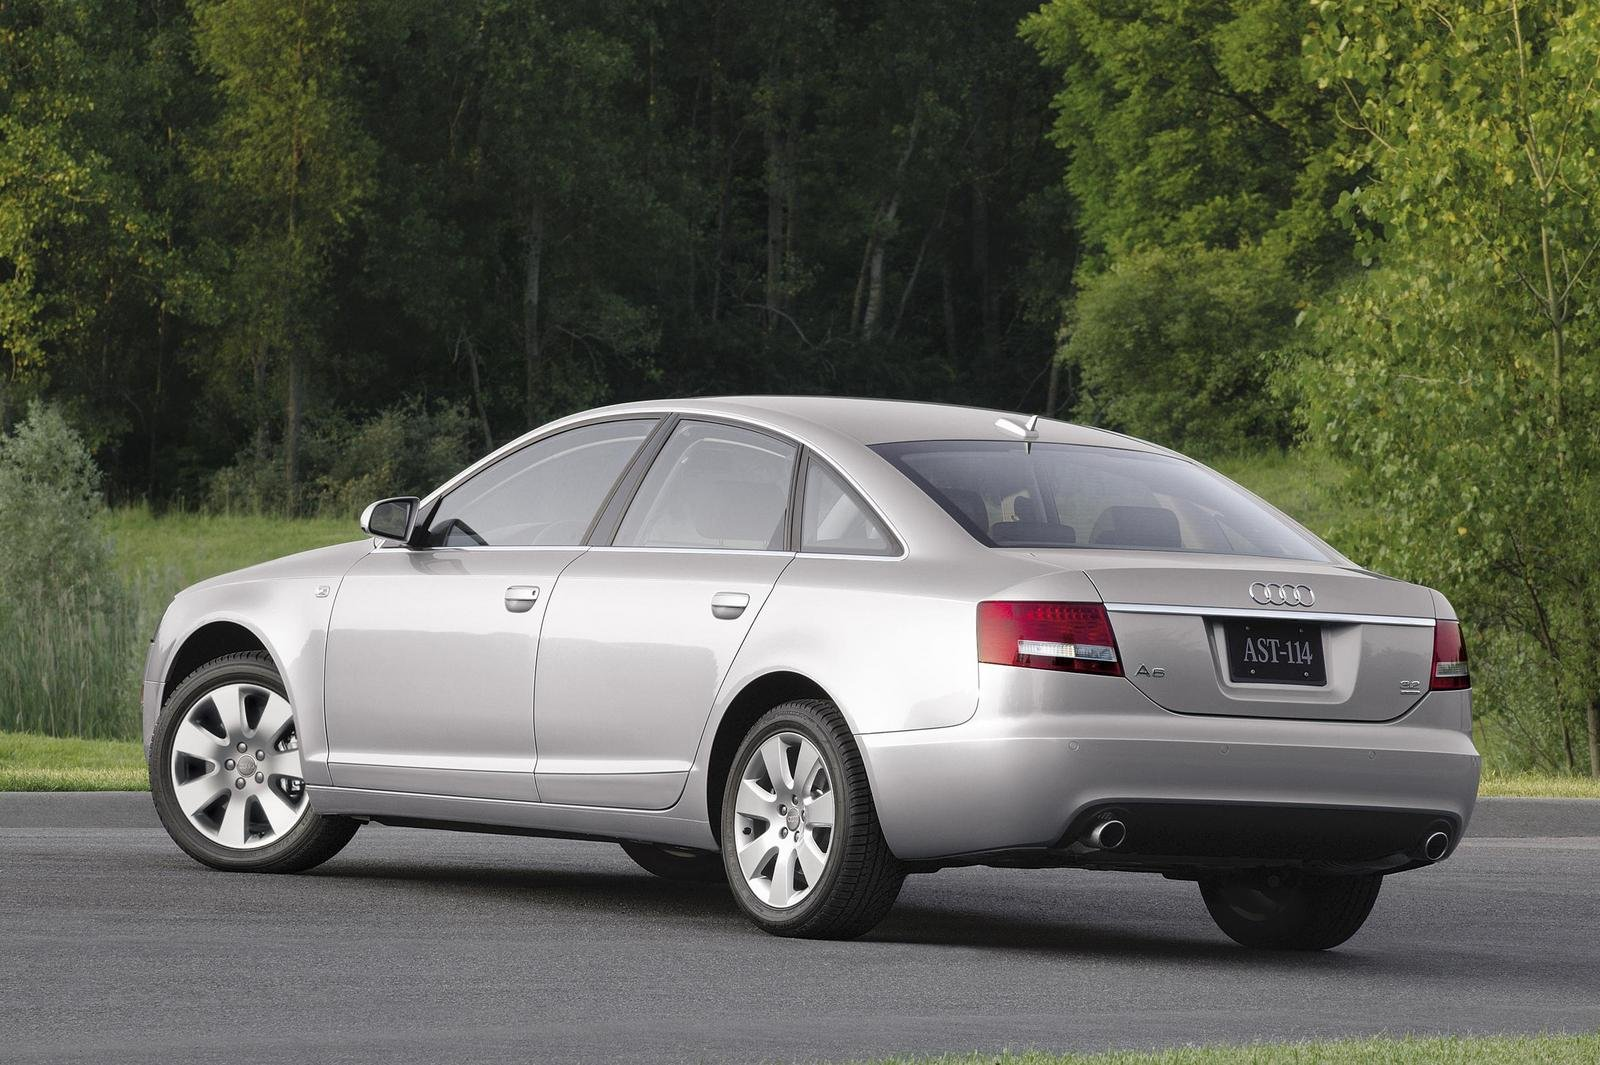 2007 audi a6 sedan picture 146499 car review top speed. Black Bedroom Furniture Sets. Home Design Ideas